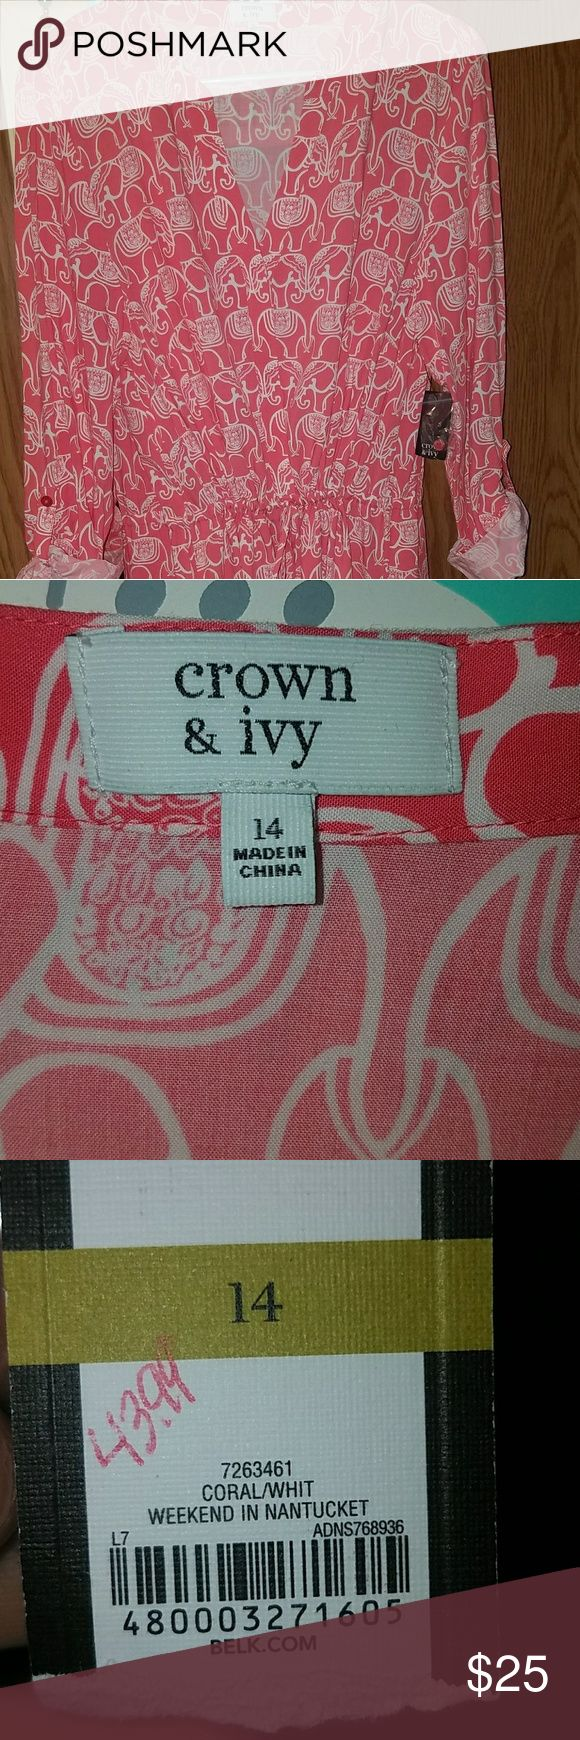 NWT Crown & Ivy Weekend In Nantucket dress Cute summer dress, size 14, stops around knee. Coral and white elephant pattern. Roll up sleeve with button, cinched waist. Price negotiable, feel free to offer. crown & ivy Dresses Long Sleeve